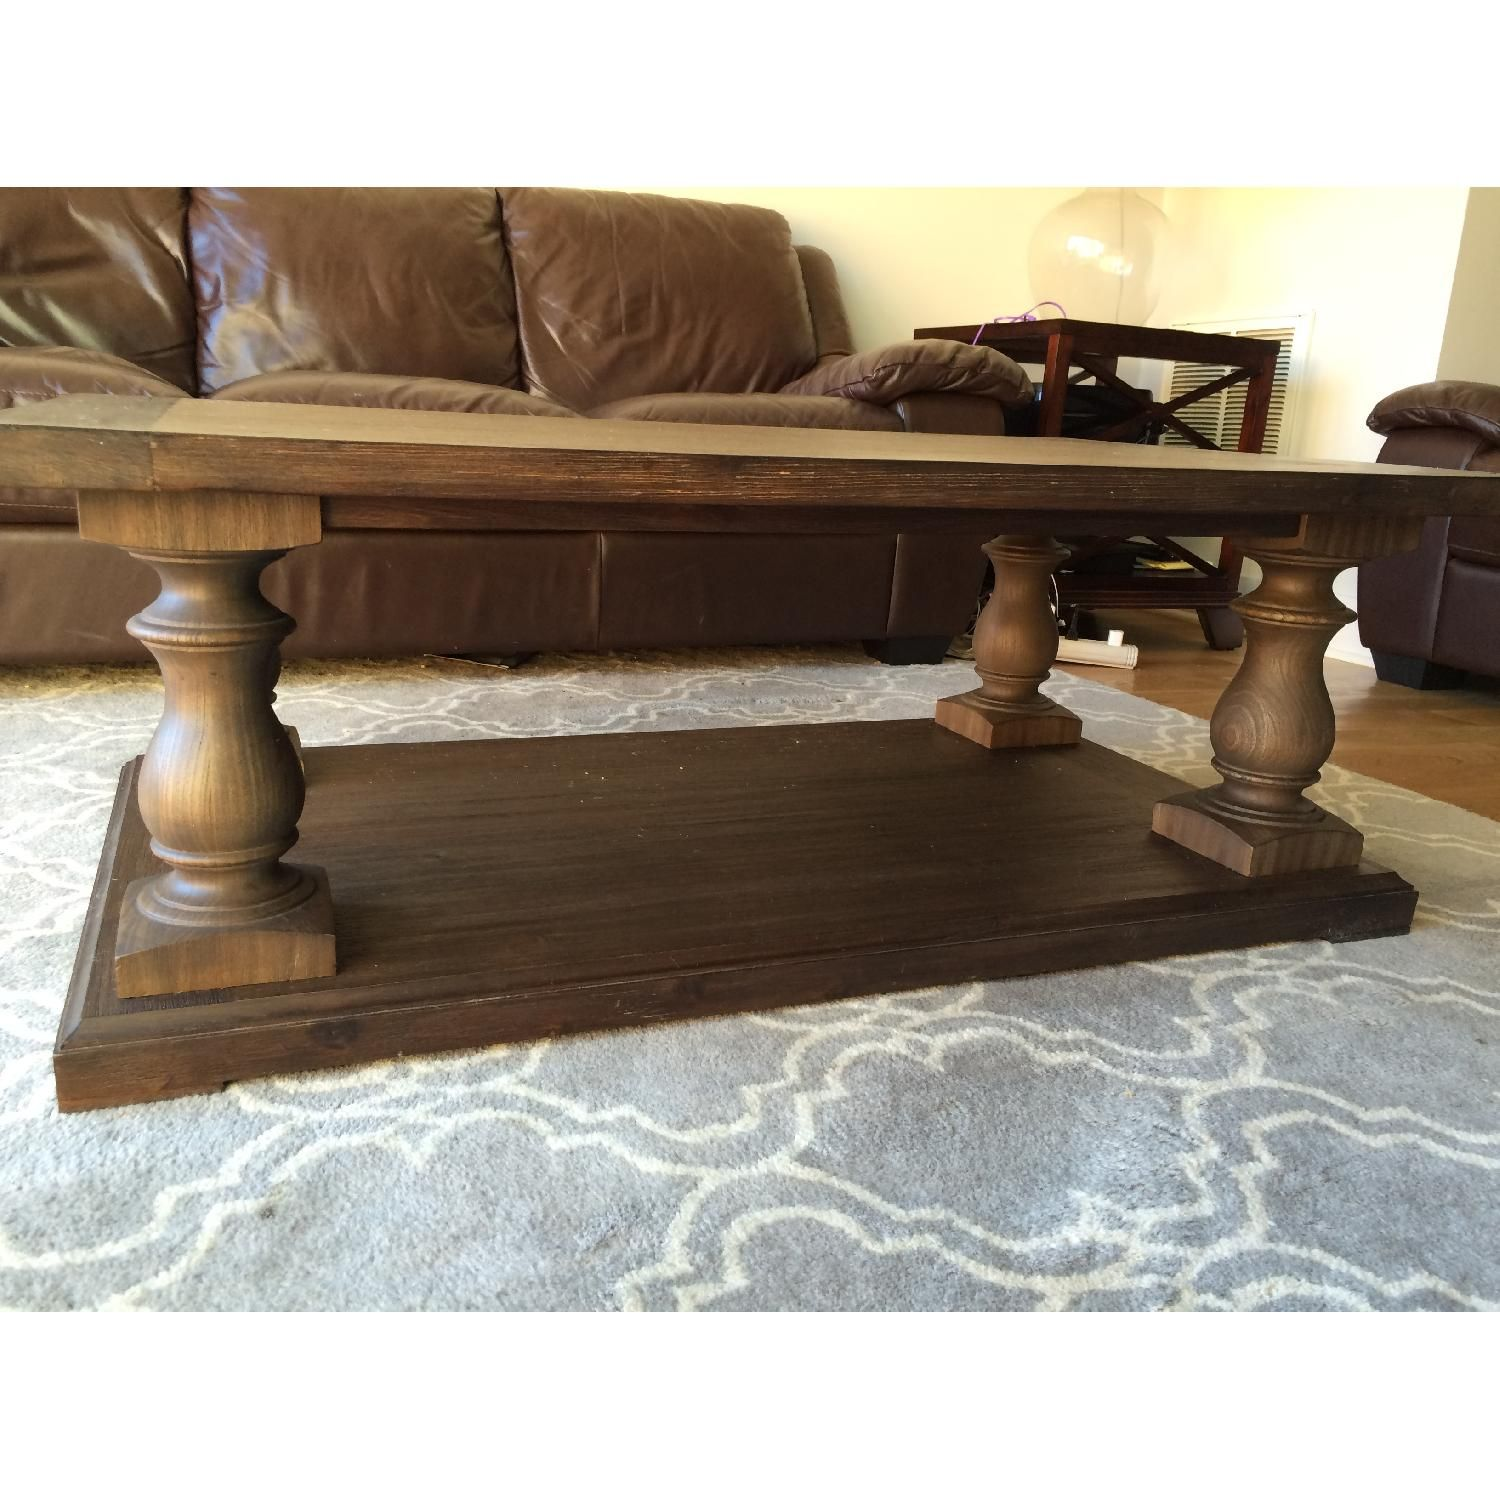 Restoration hardware 17th century monastery coffee table in brown acacia friday finds Restoration coffee tables